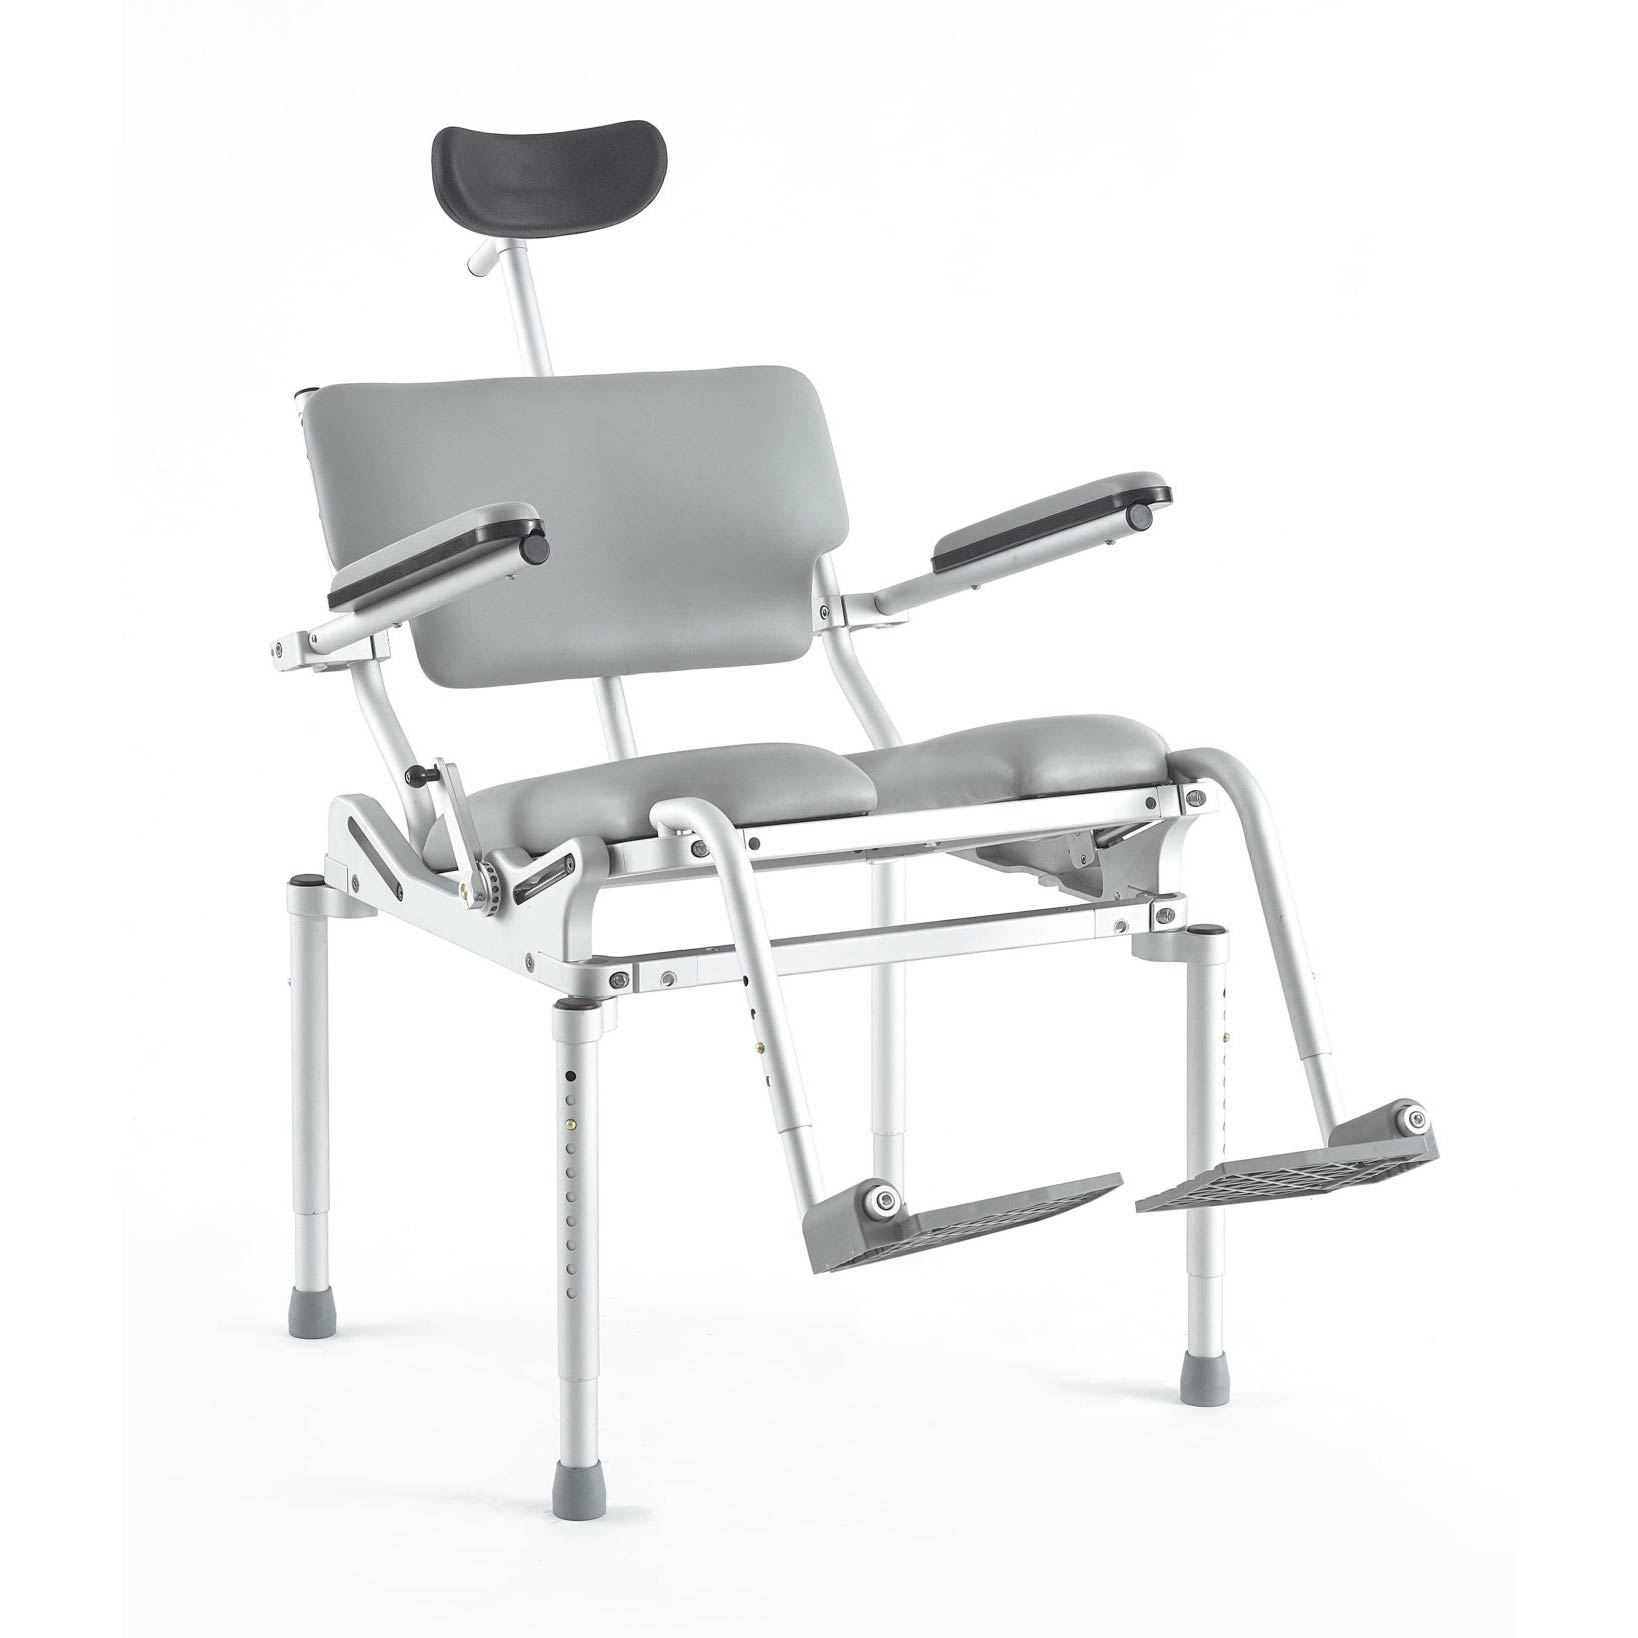 Nuprodx Multichair 3200Tilt Tub And Toilet Chair   Medicaleshop